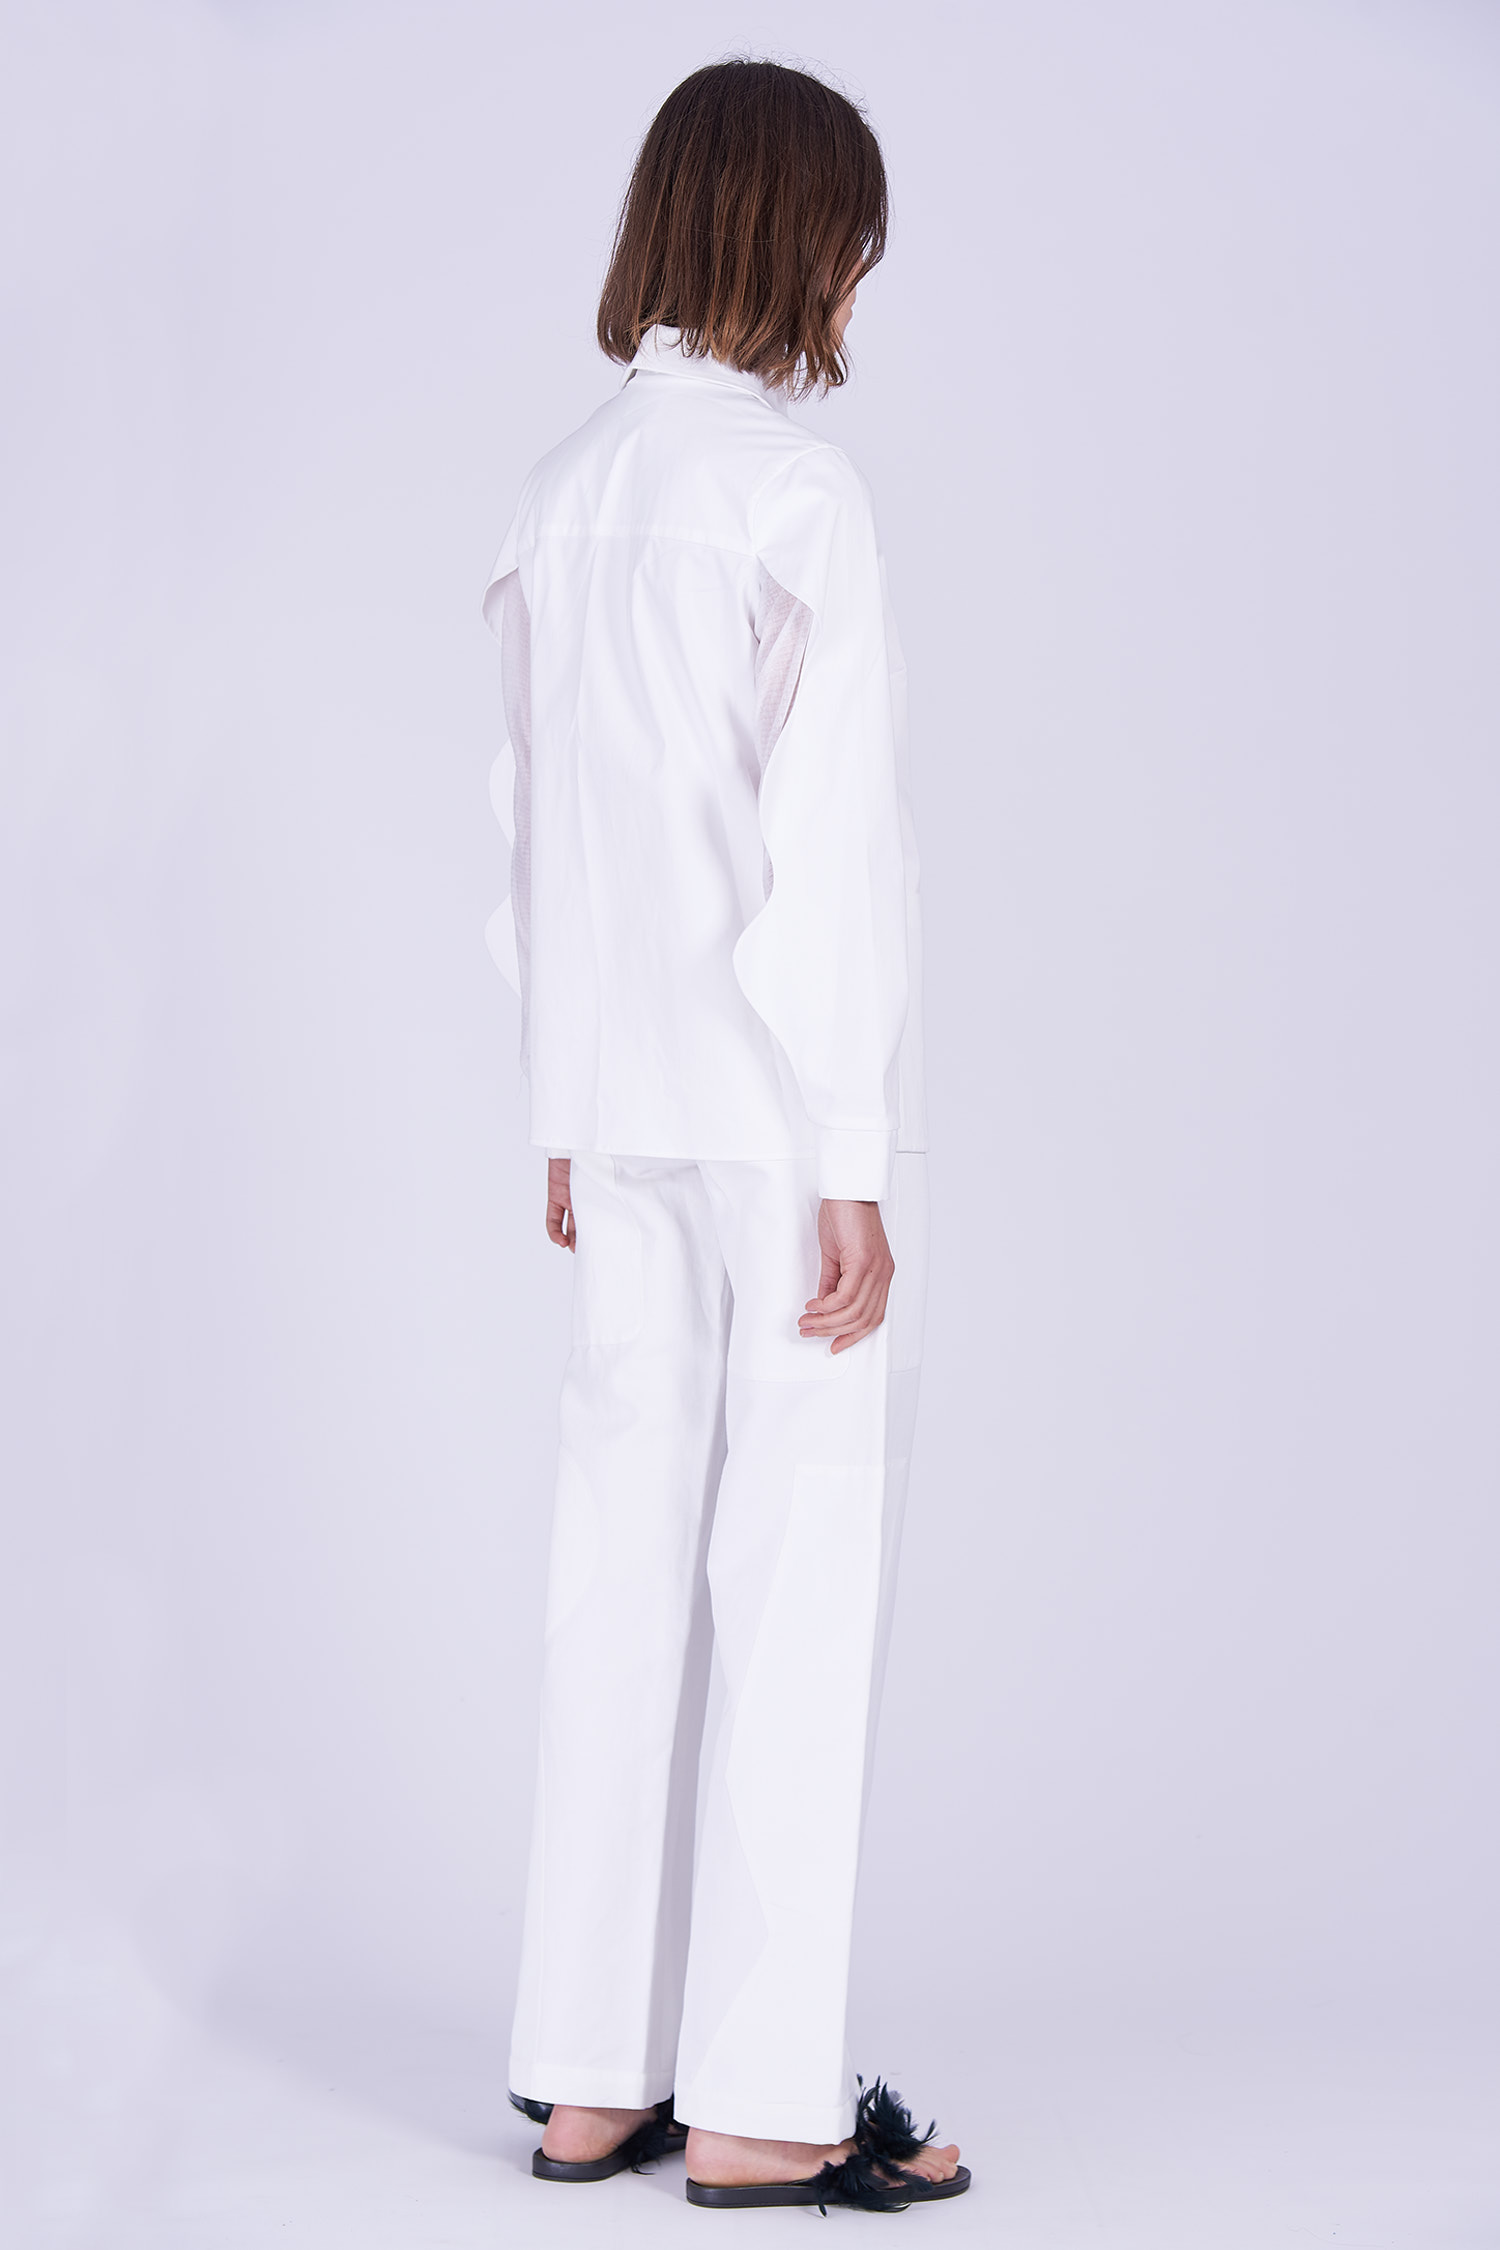 Acephala Ps2020 White Shirt White Trousers Side Back 2